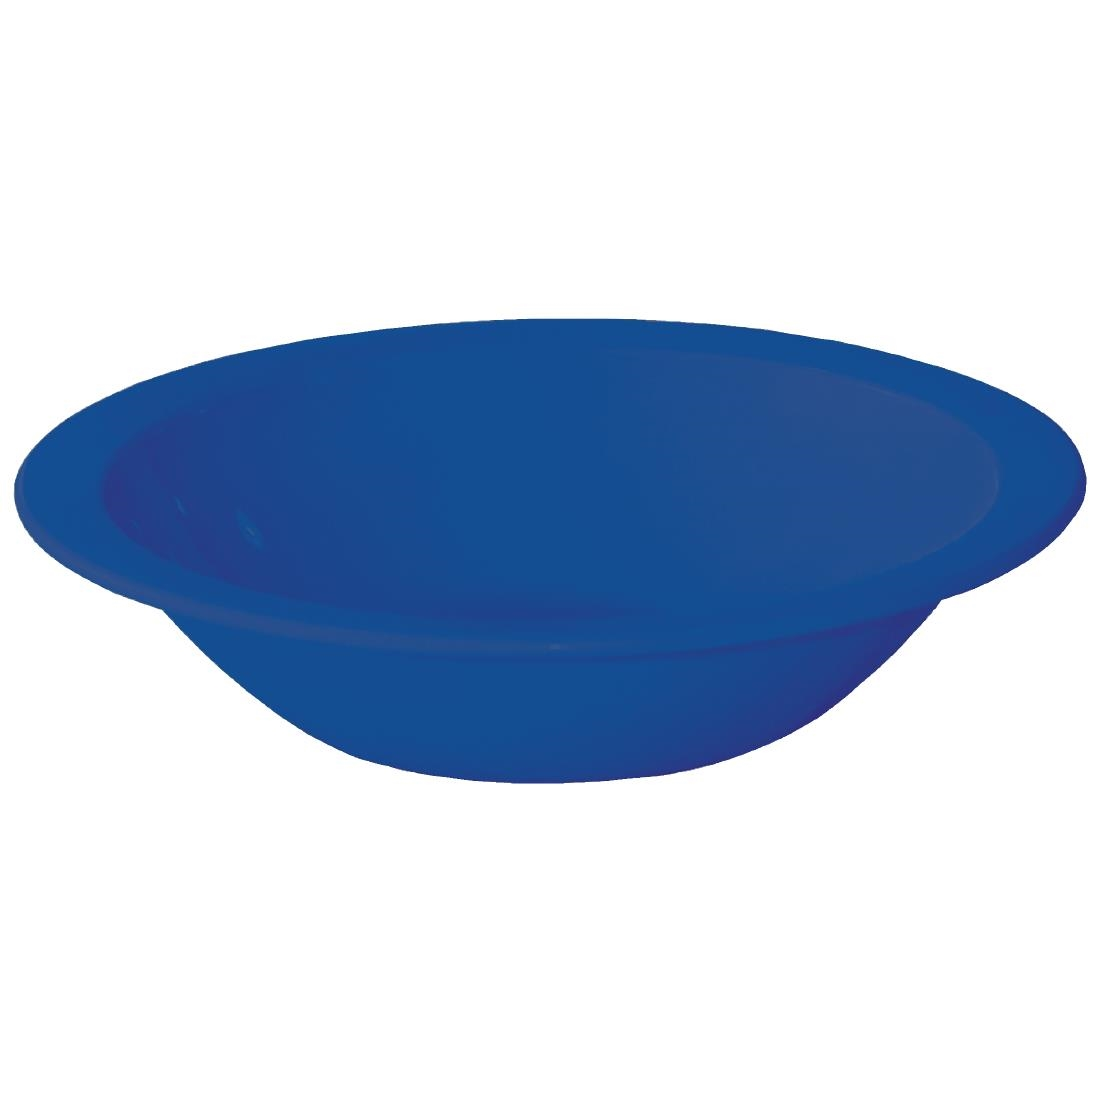 Bowl 14oz – Blue